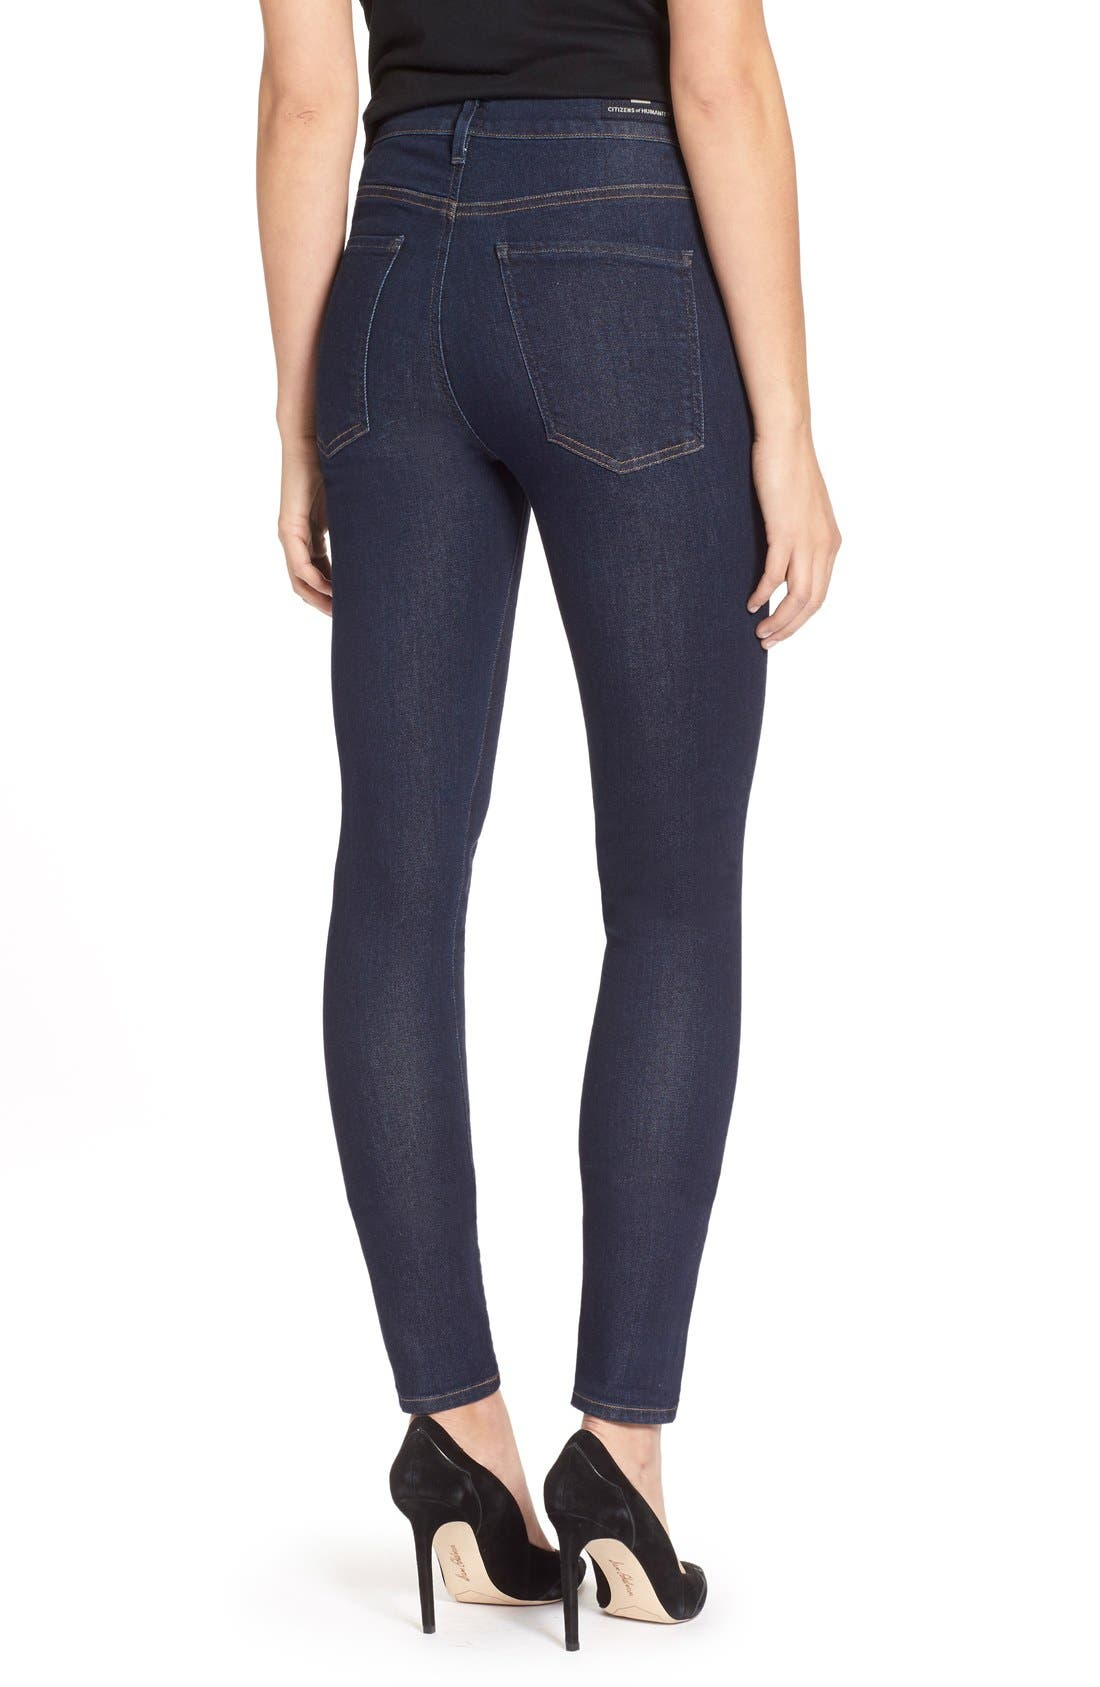 'Carlie' High Rise Skinny Jeans,                             Alternate thumbnail 5, color,                             406